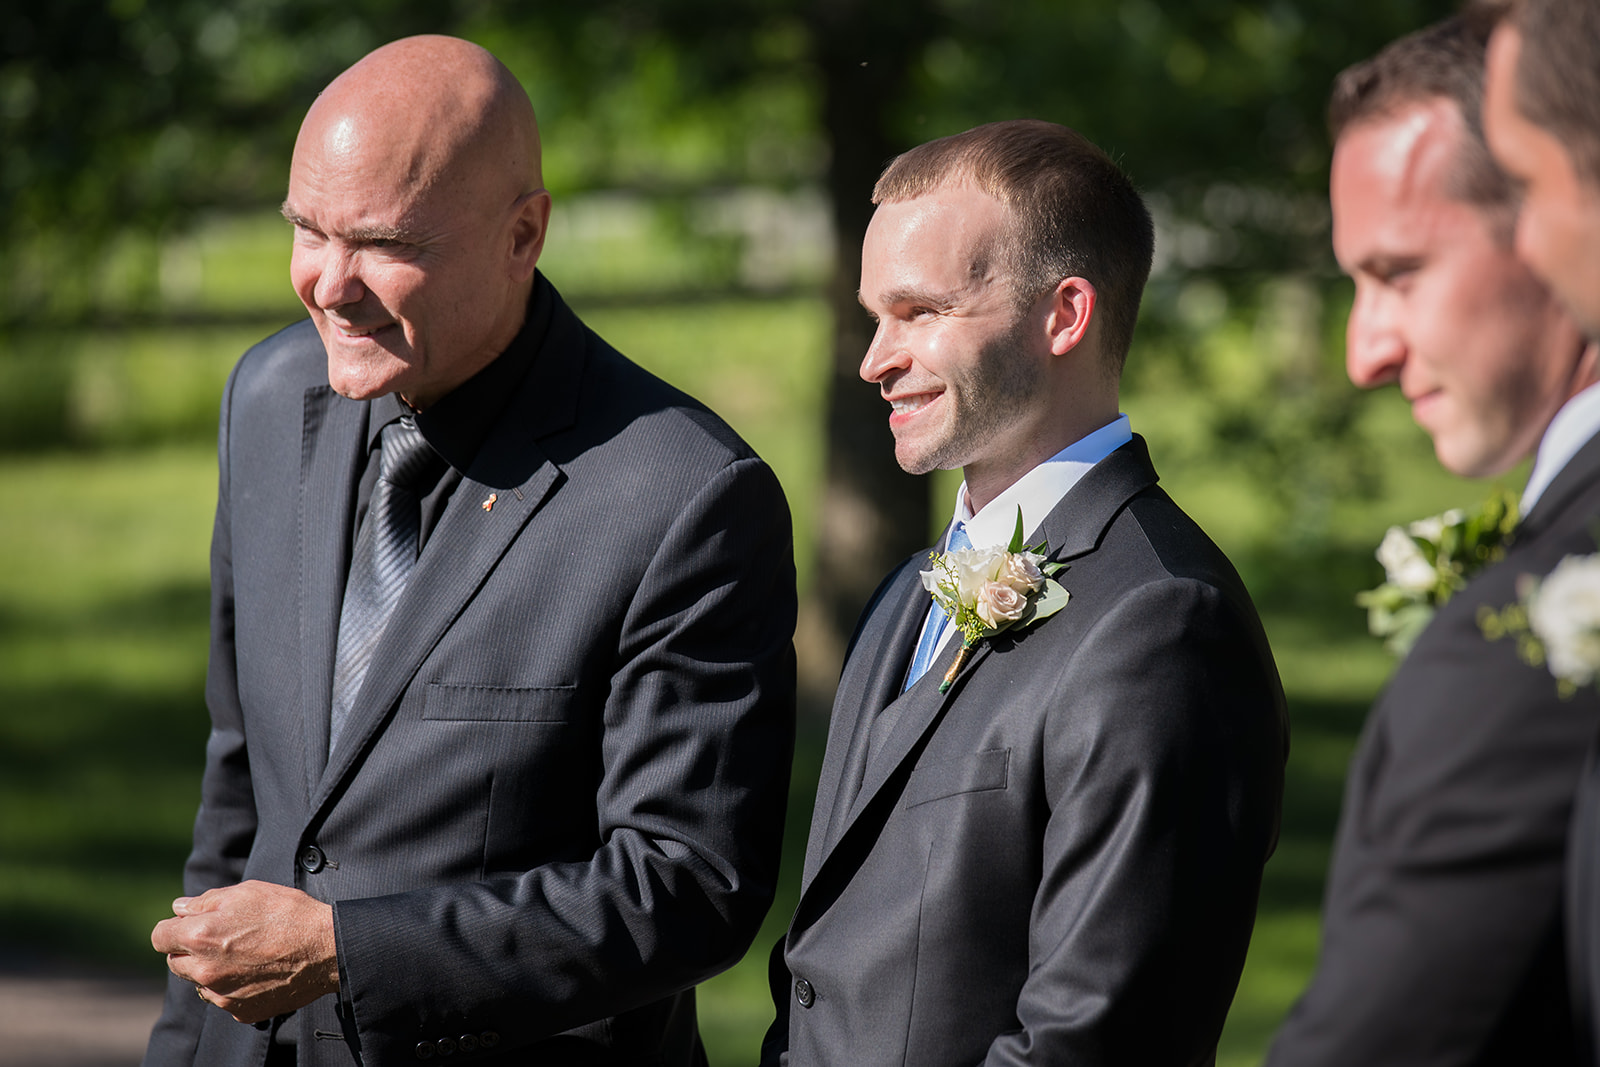 Greg Trulson, Justice of the Peace, Vermont Wedding Officiant, Elopements, The Essex